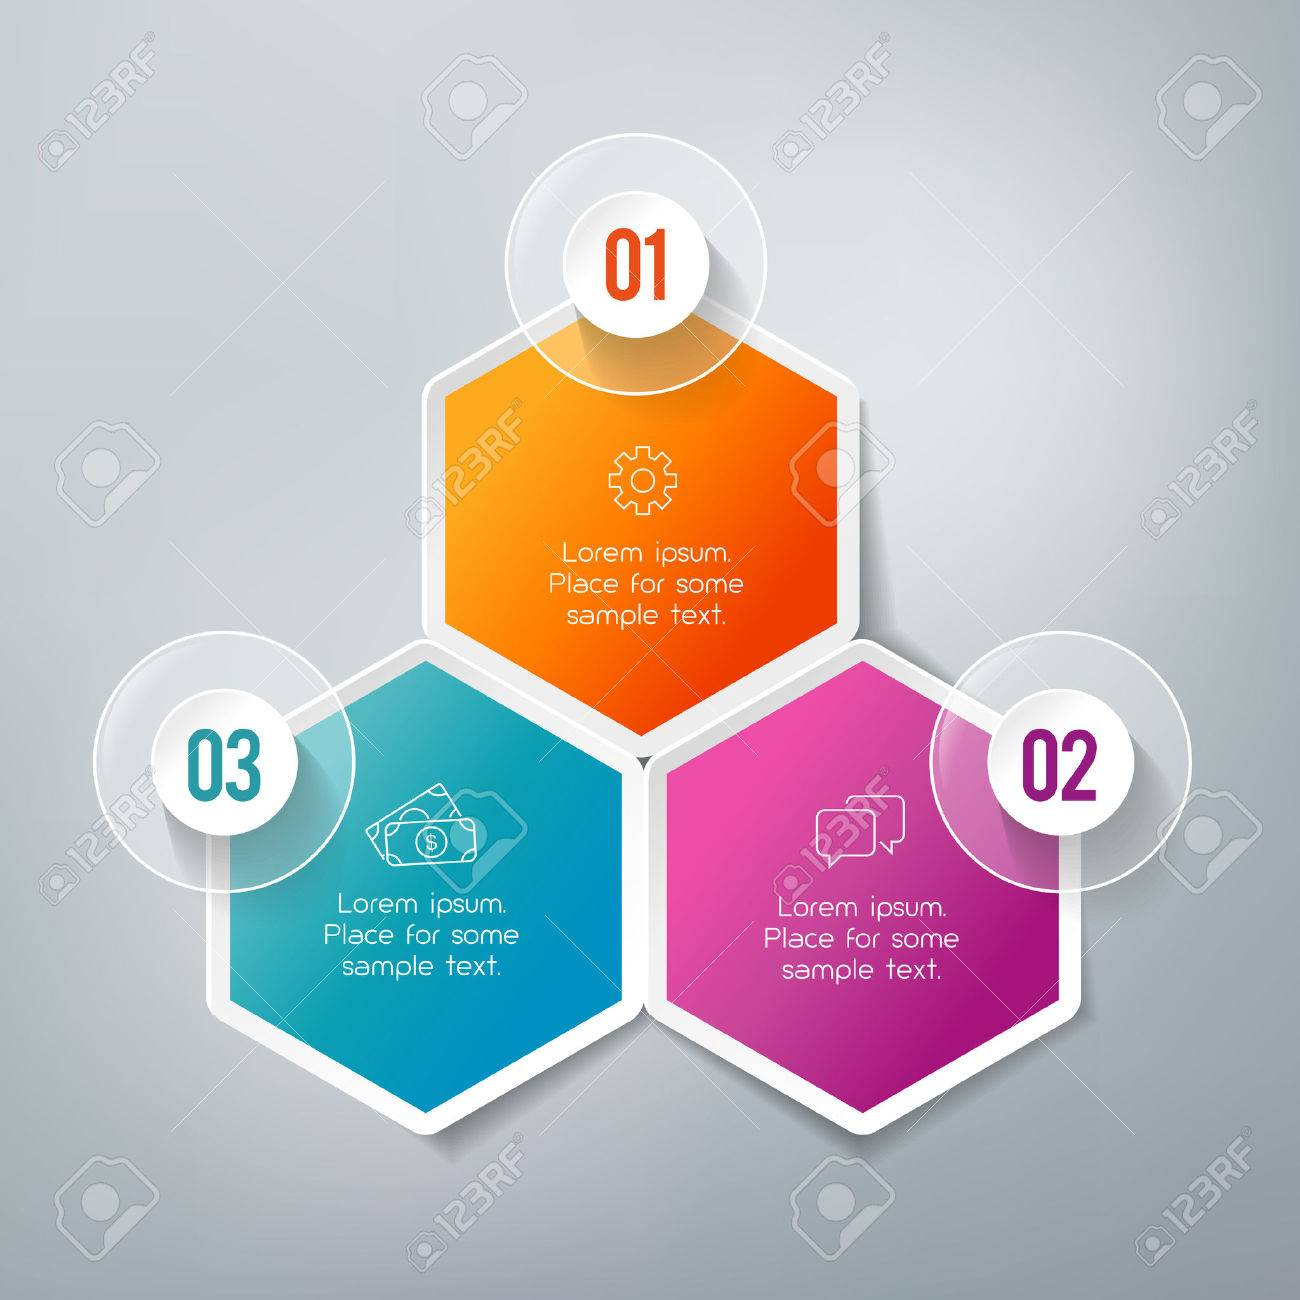 Three steps infographics - can illustrate a strategy, workflow or team work. - 50372258